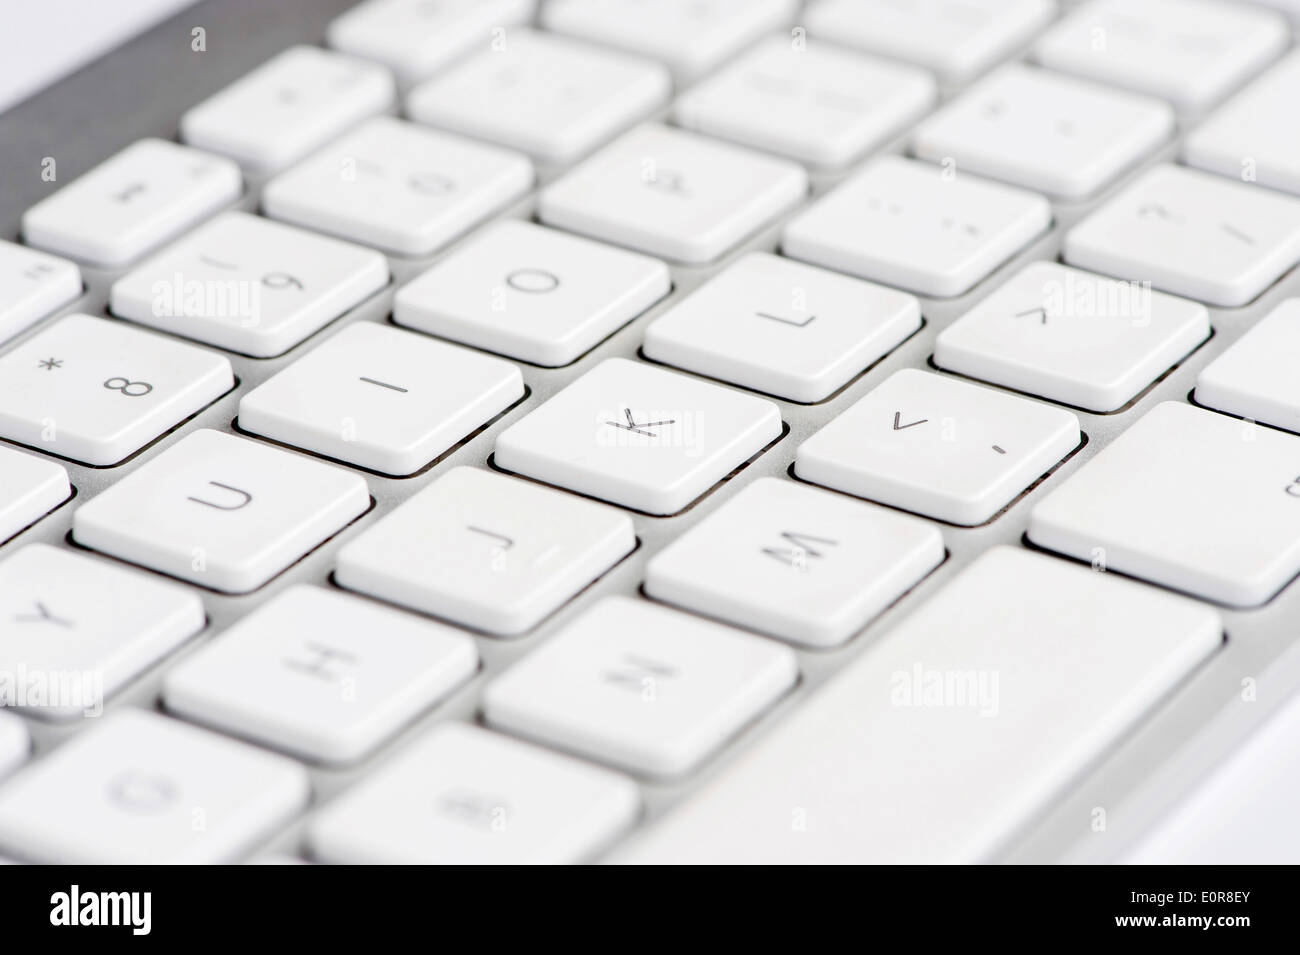 Apple mac white Keyboard focused on the letter K - Stock Image